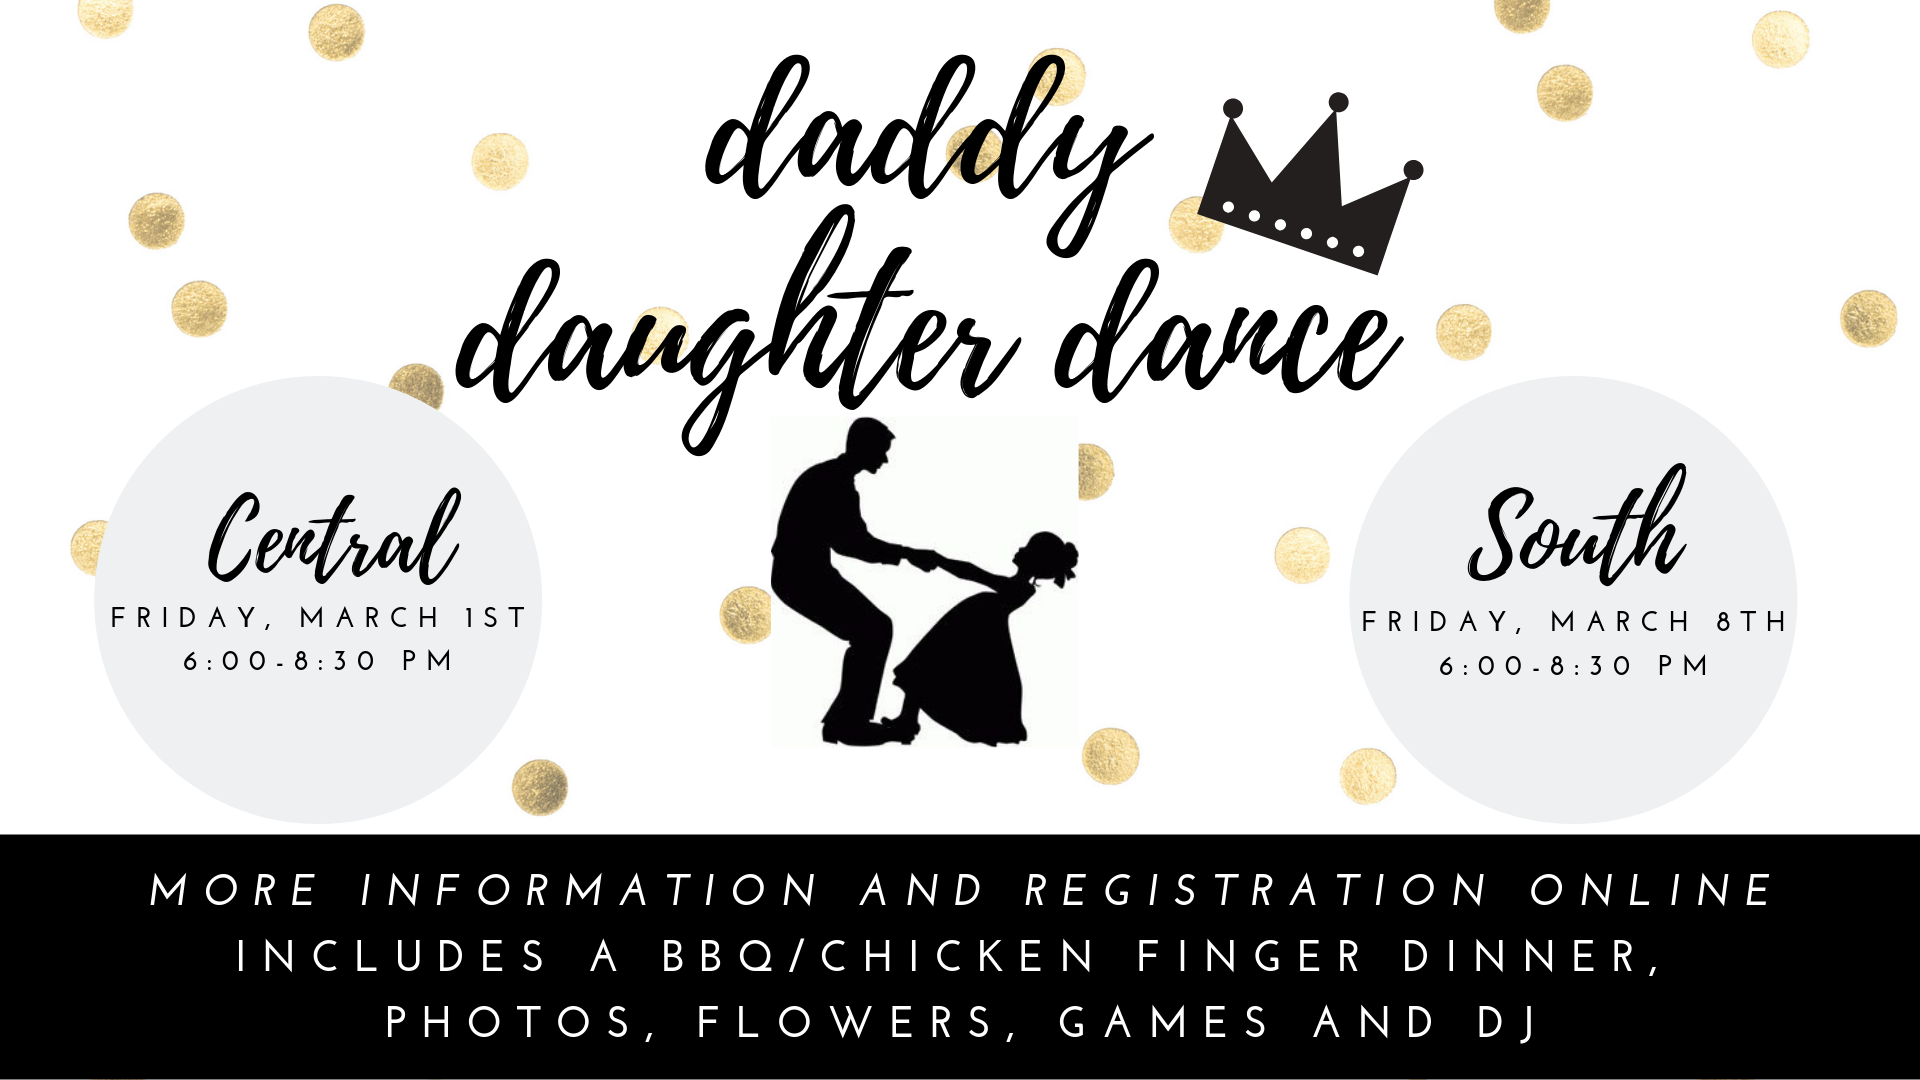 2019 Daddy Daughter Dance (1).jpg